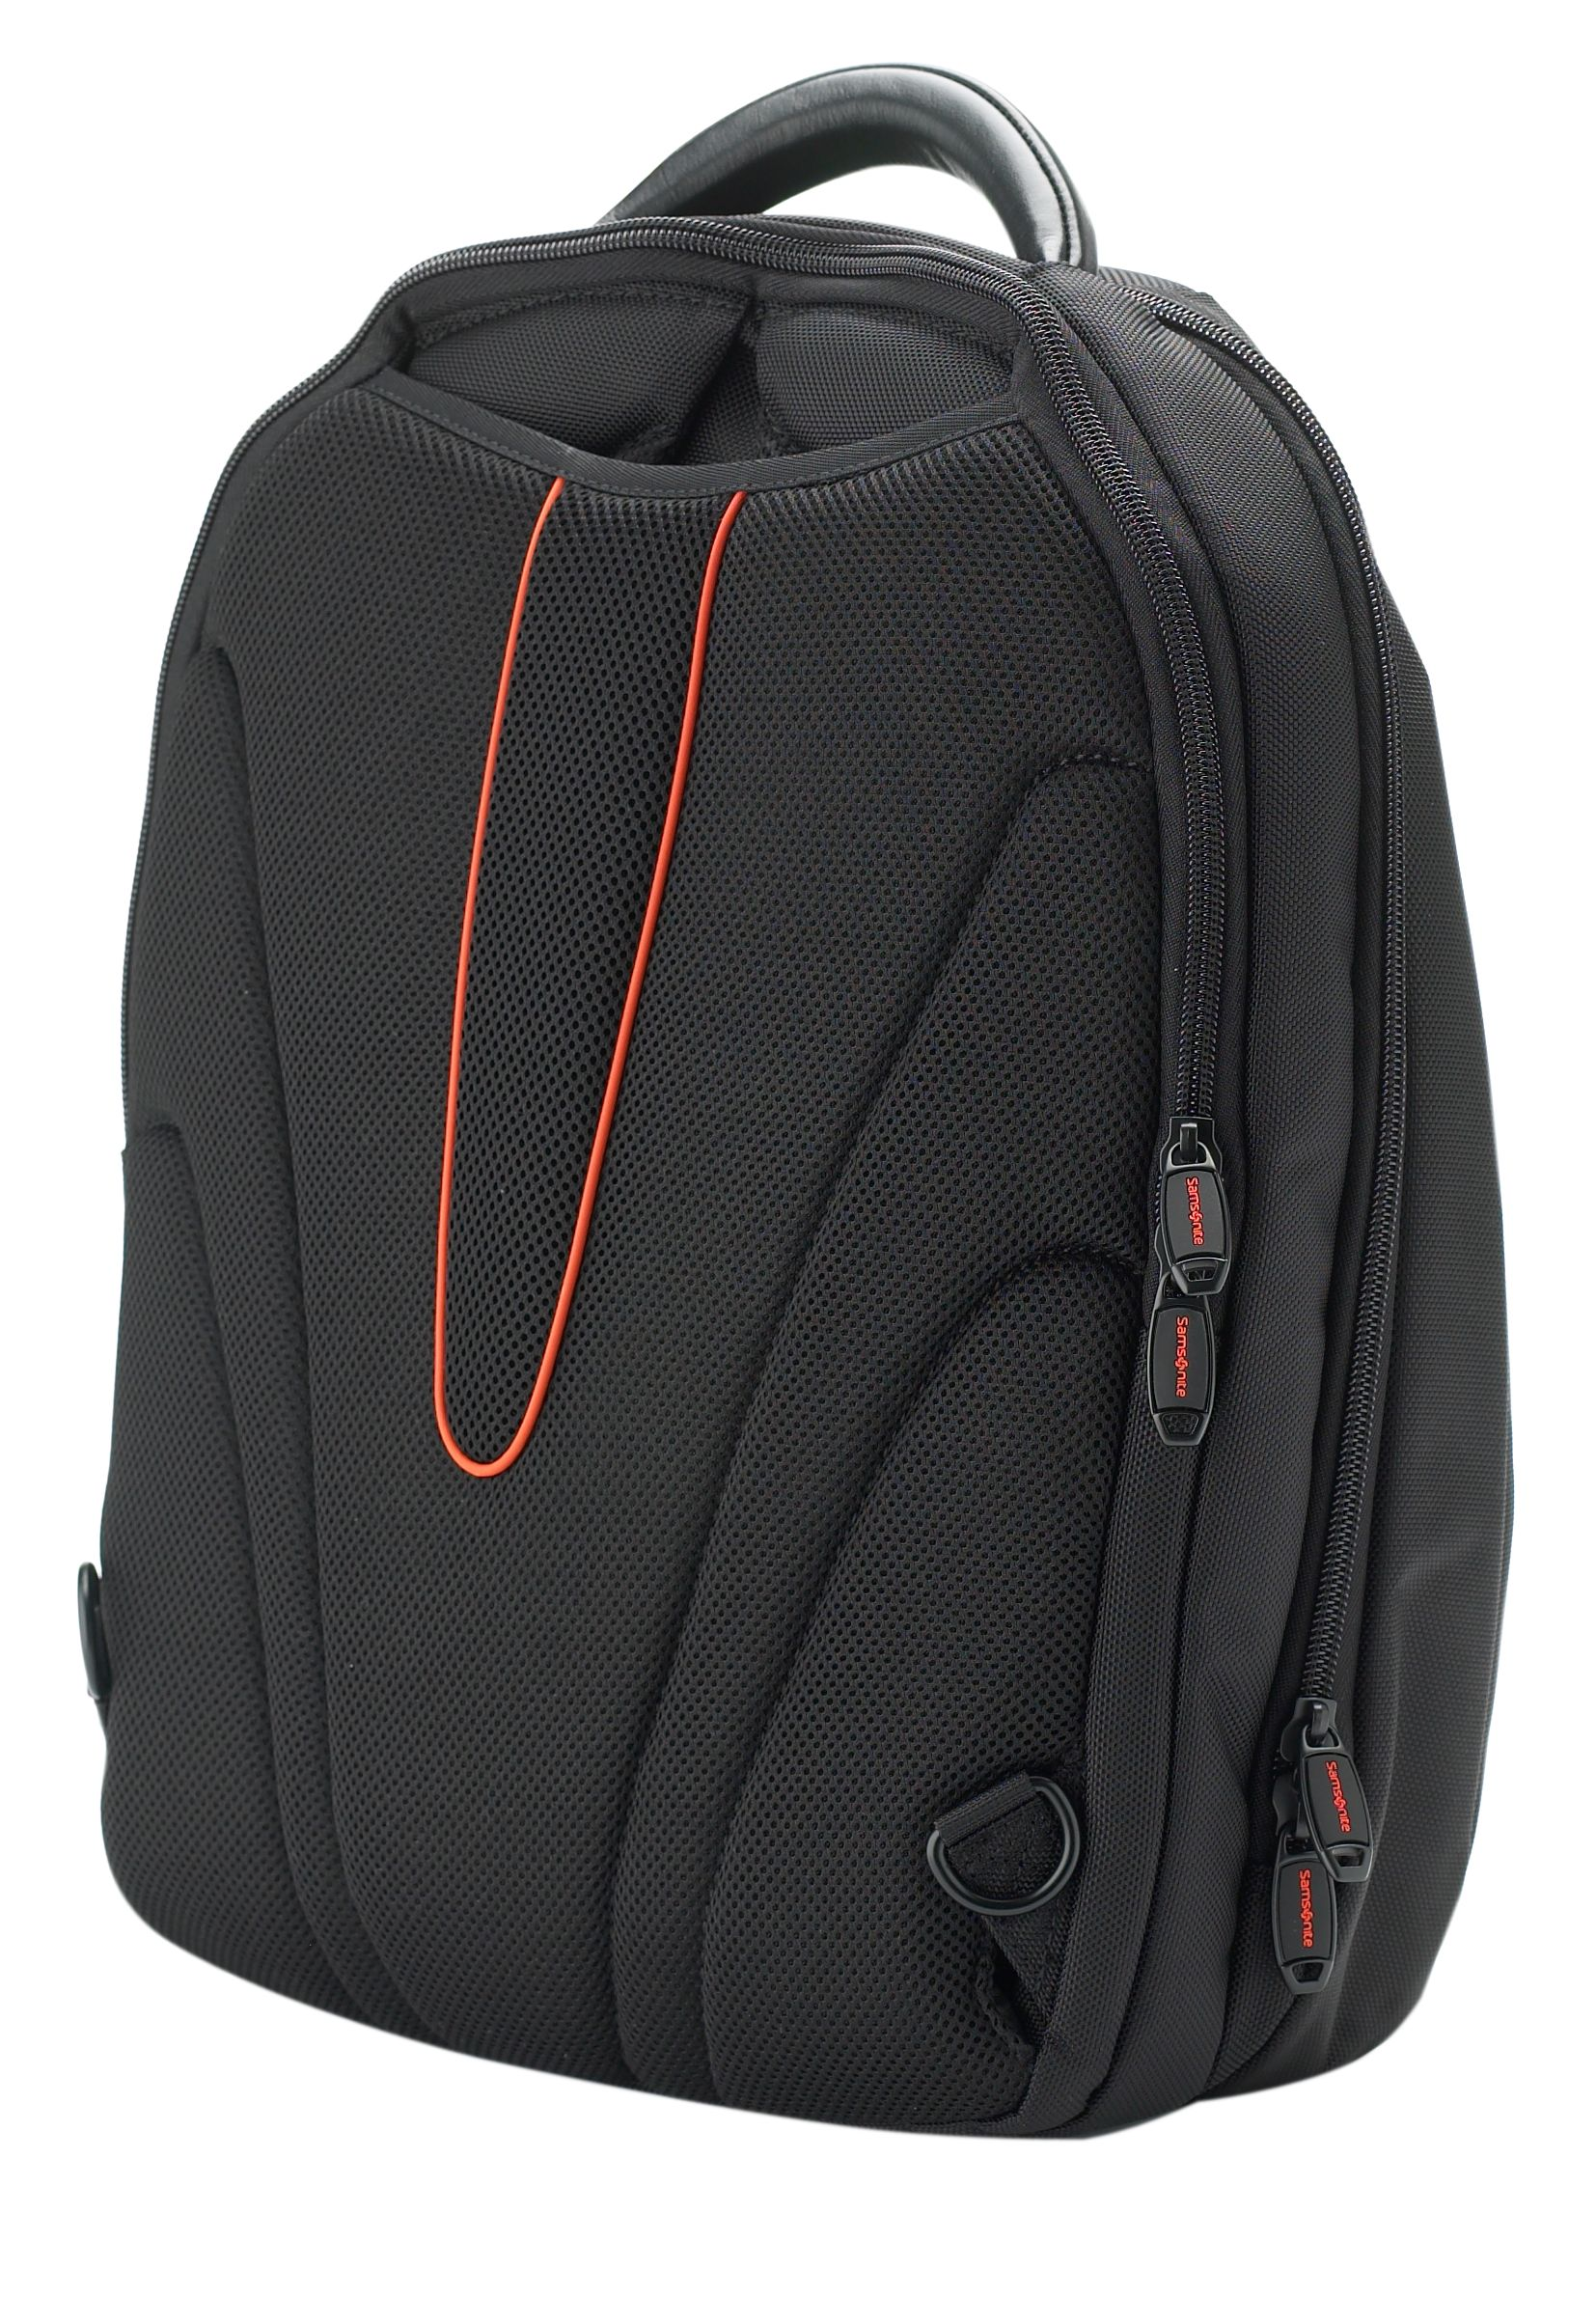 Pro-Dlx large nylon laptop backpack